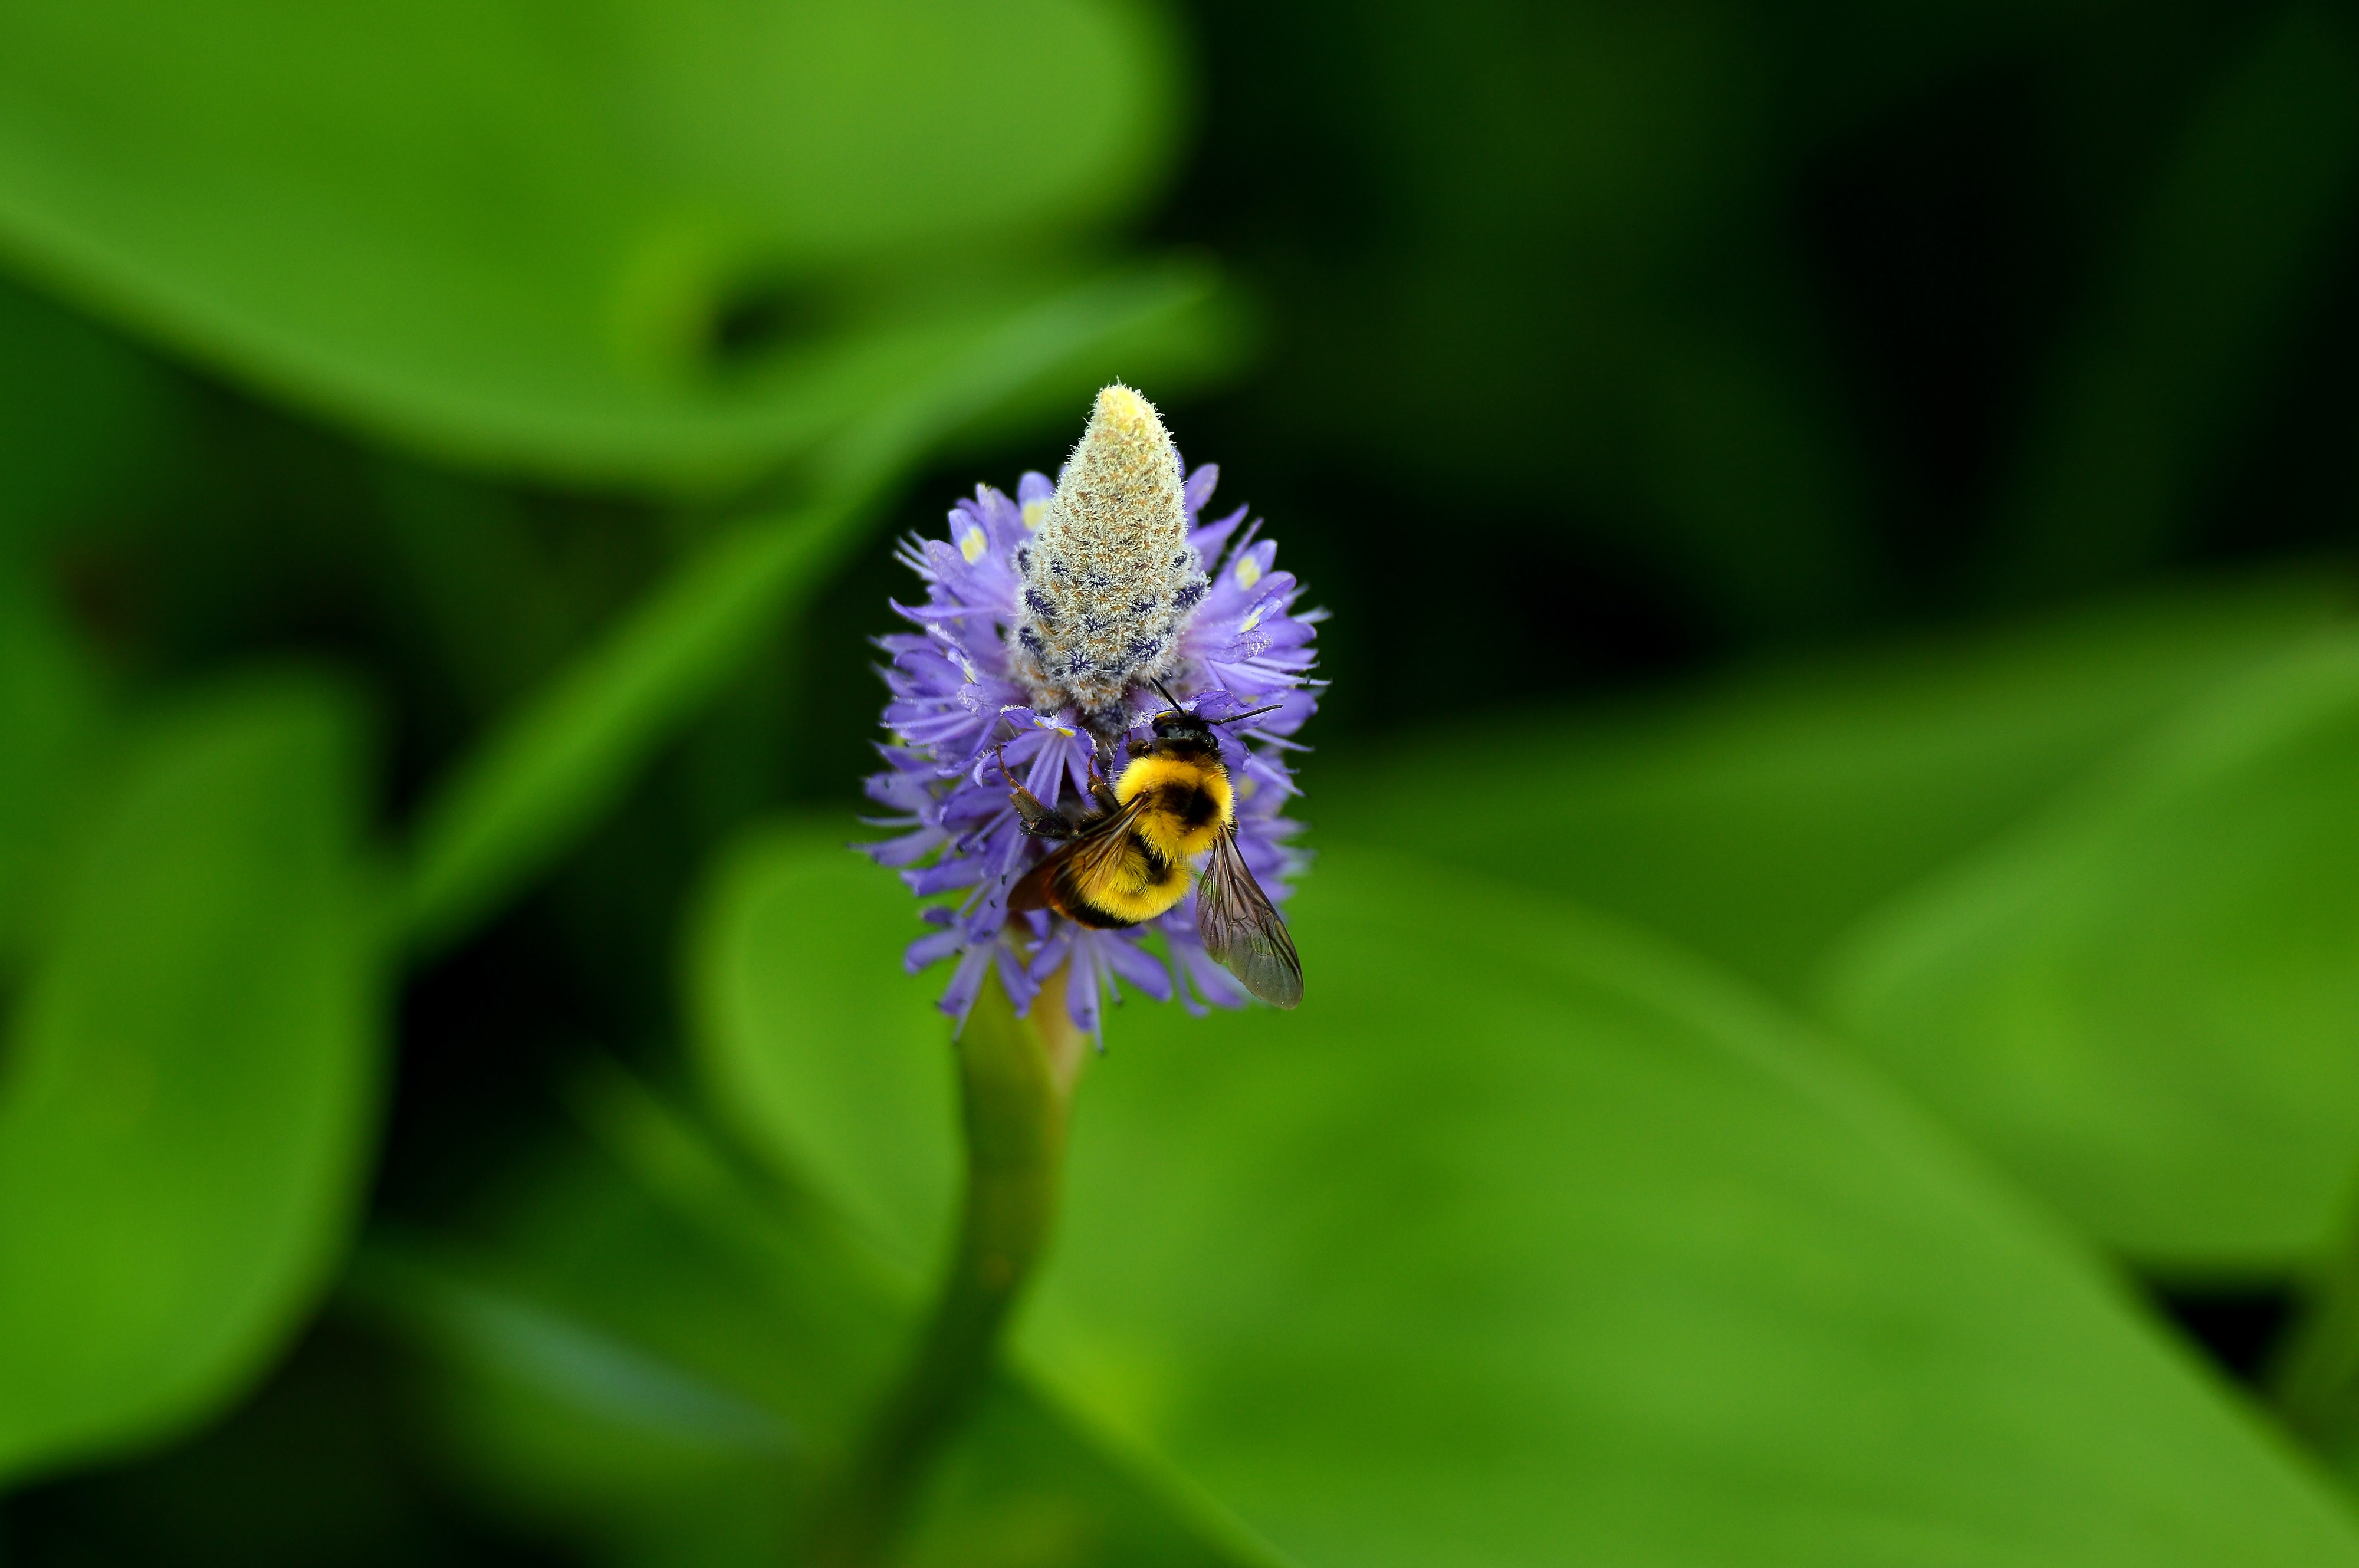 Bee pollinates a purple flower near leaves